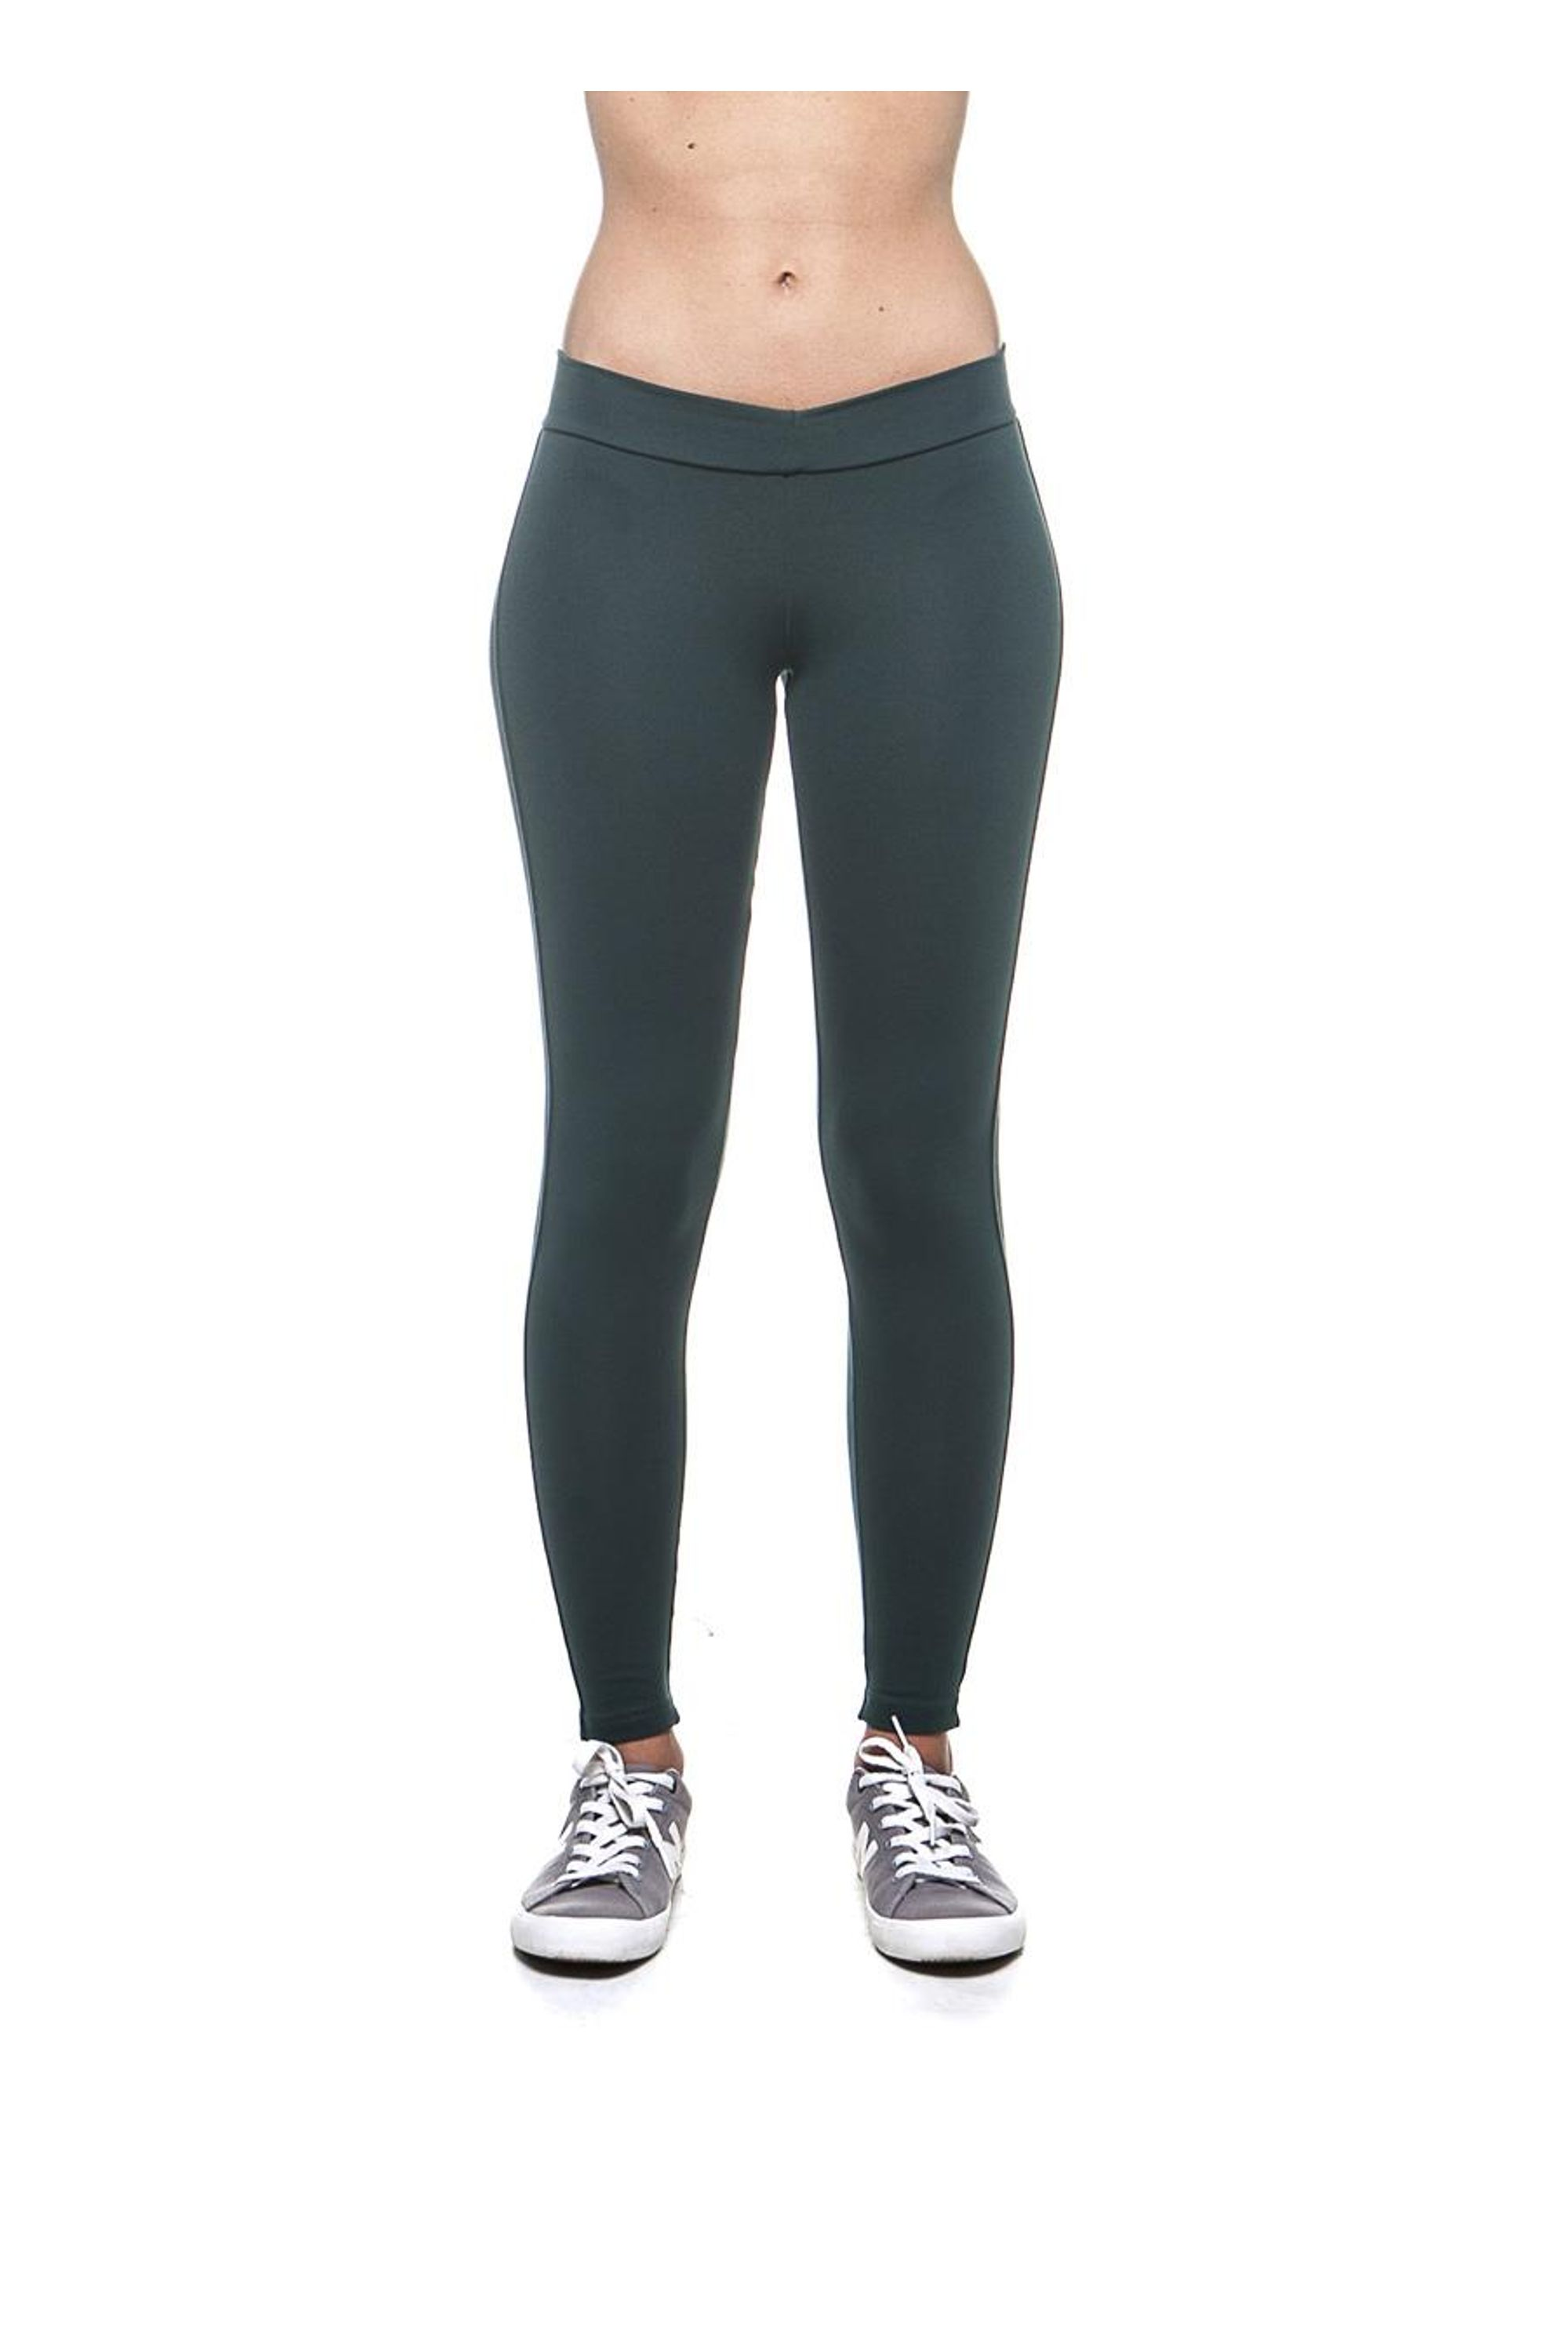 3d67a8513a131 Legging Fitness Karen Supplex Power – Roupa de academia para o dia a ...